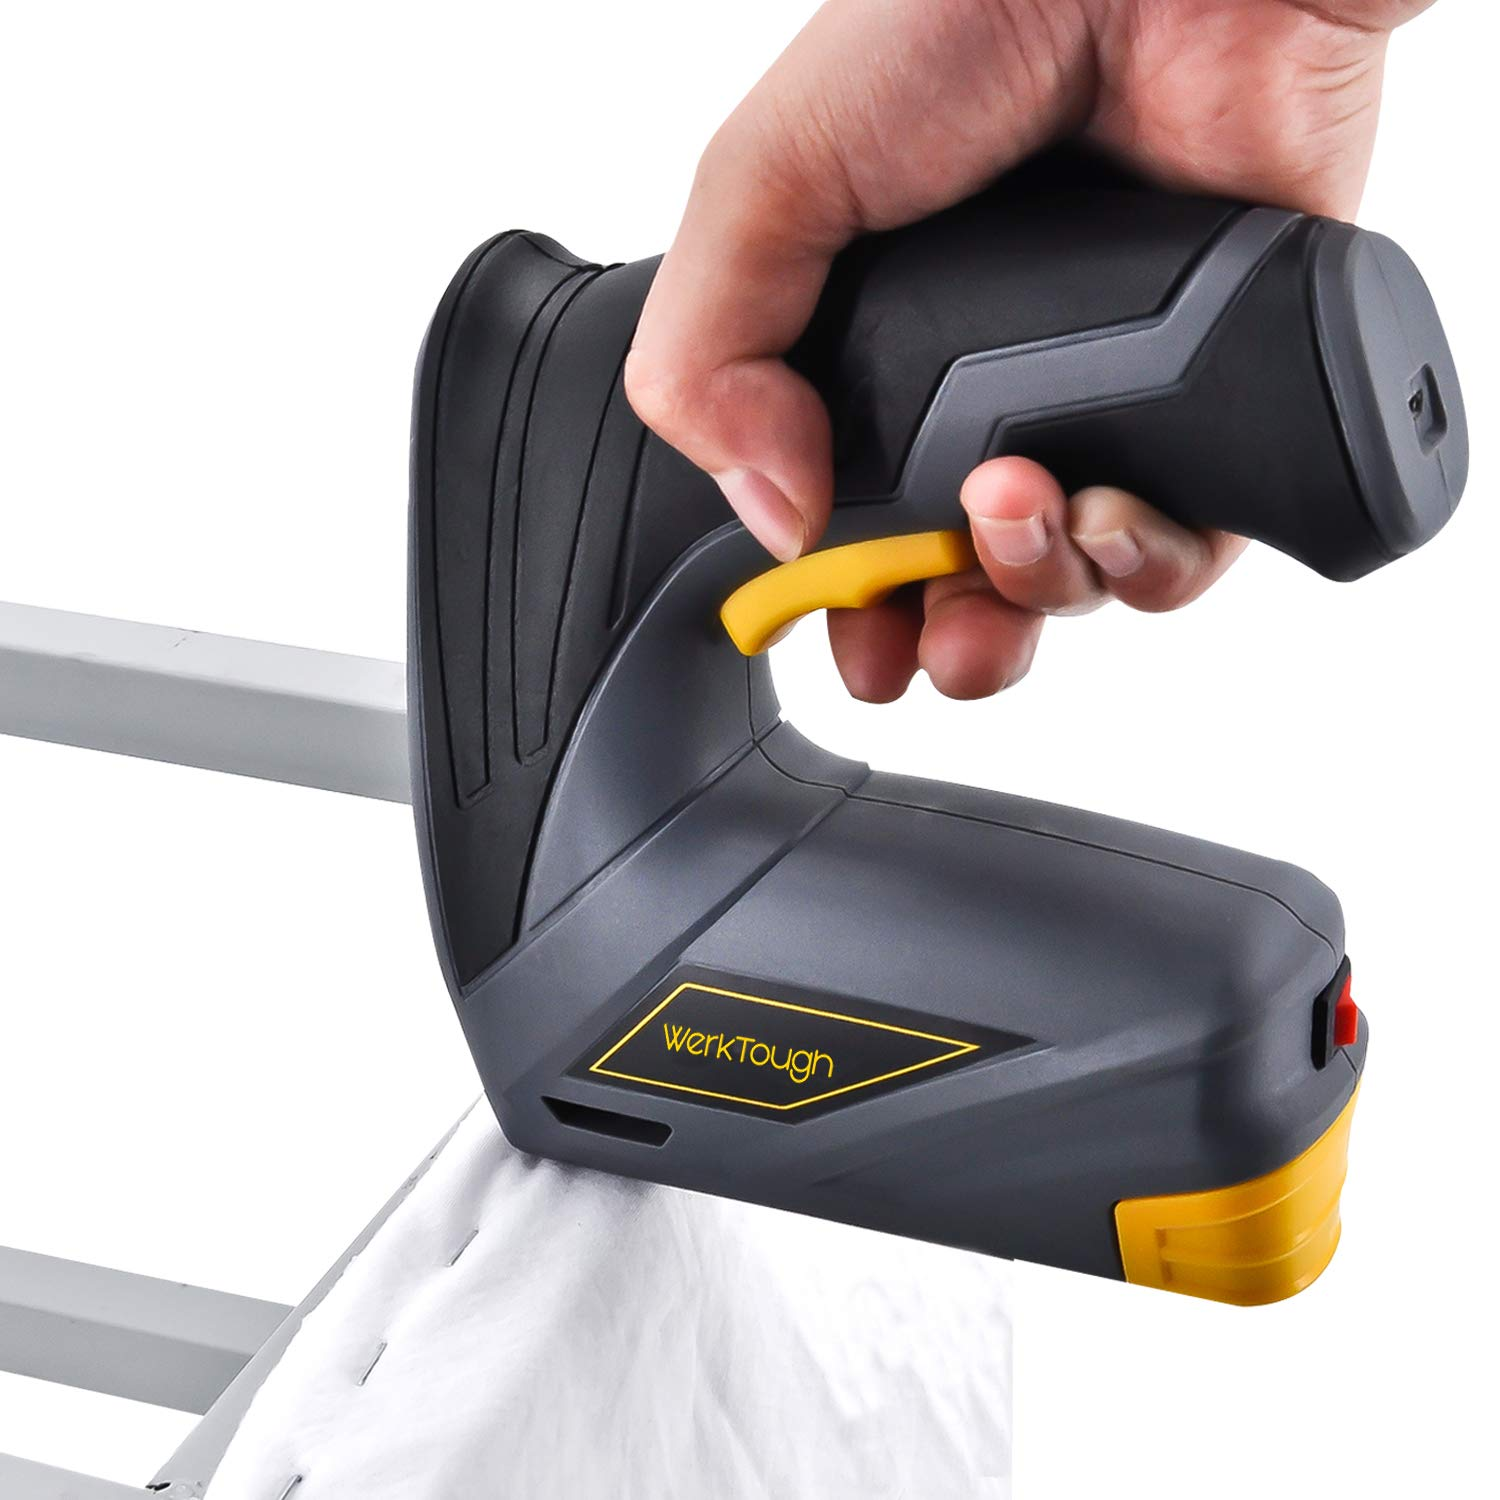 Werktough CSG01 Cordless Staple Gun Professional Electric Stapler with Carrying Box Rechargeable USB Charger